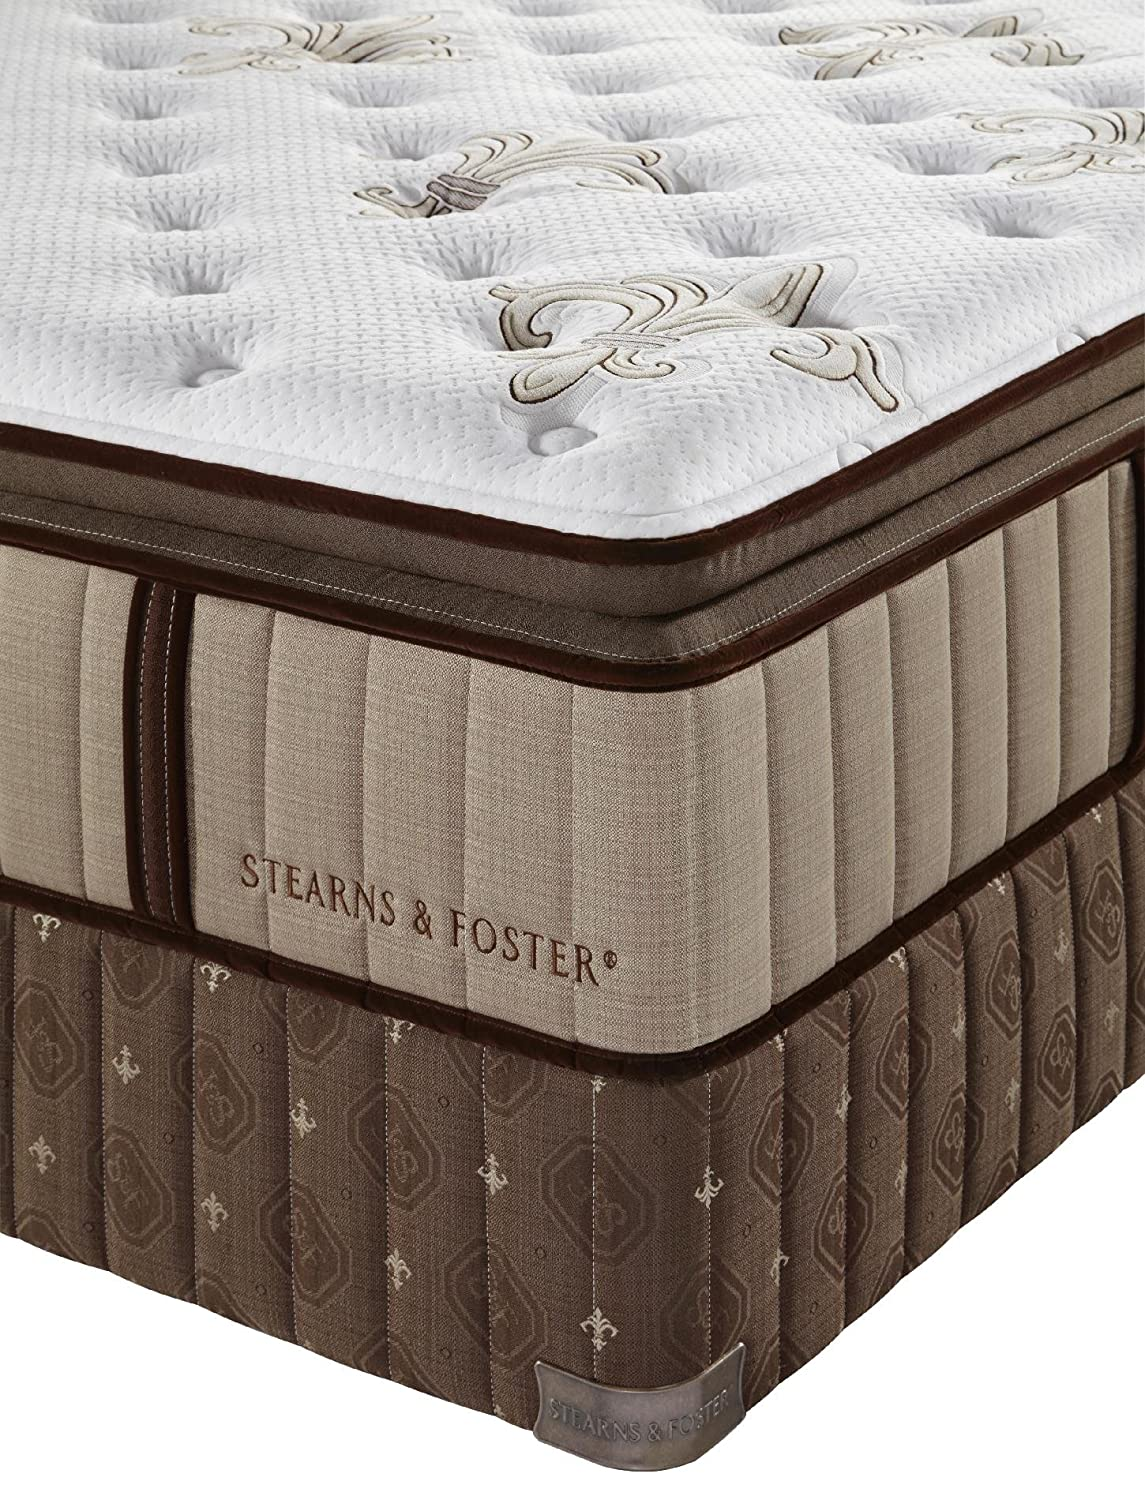 Amazon.com: Stearns And Foster Estate Luxury Plush Pillow Top Mattress(Queen):  Kitchen & Dining